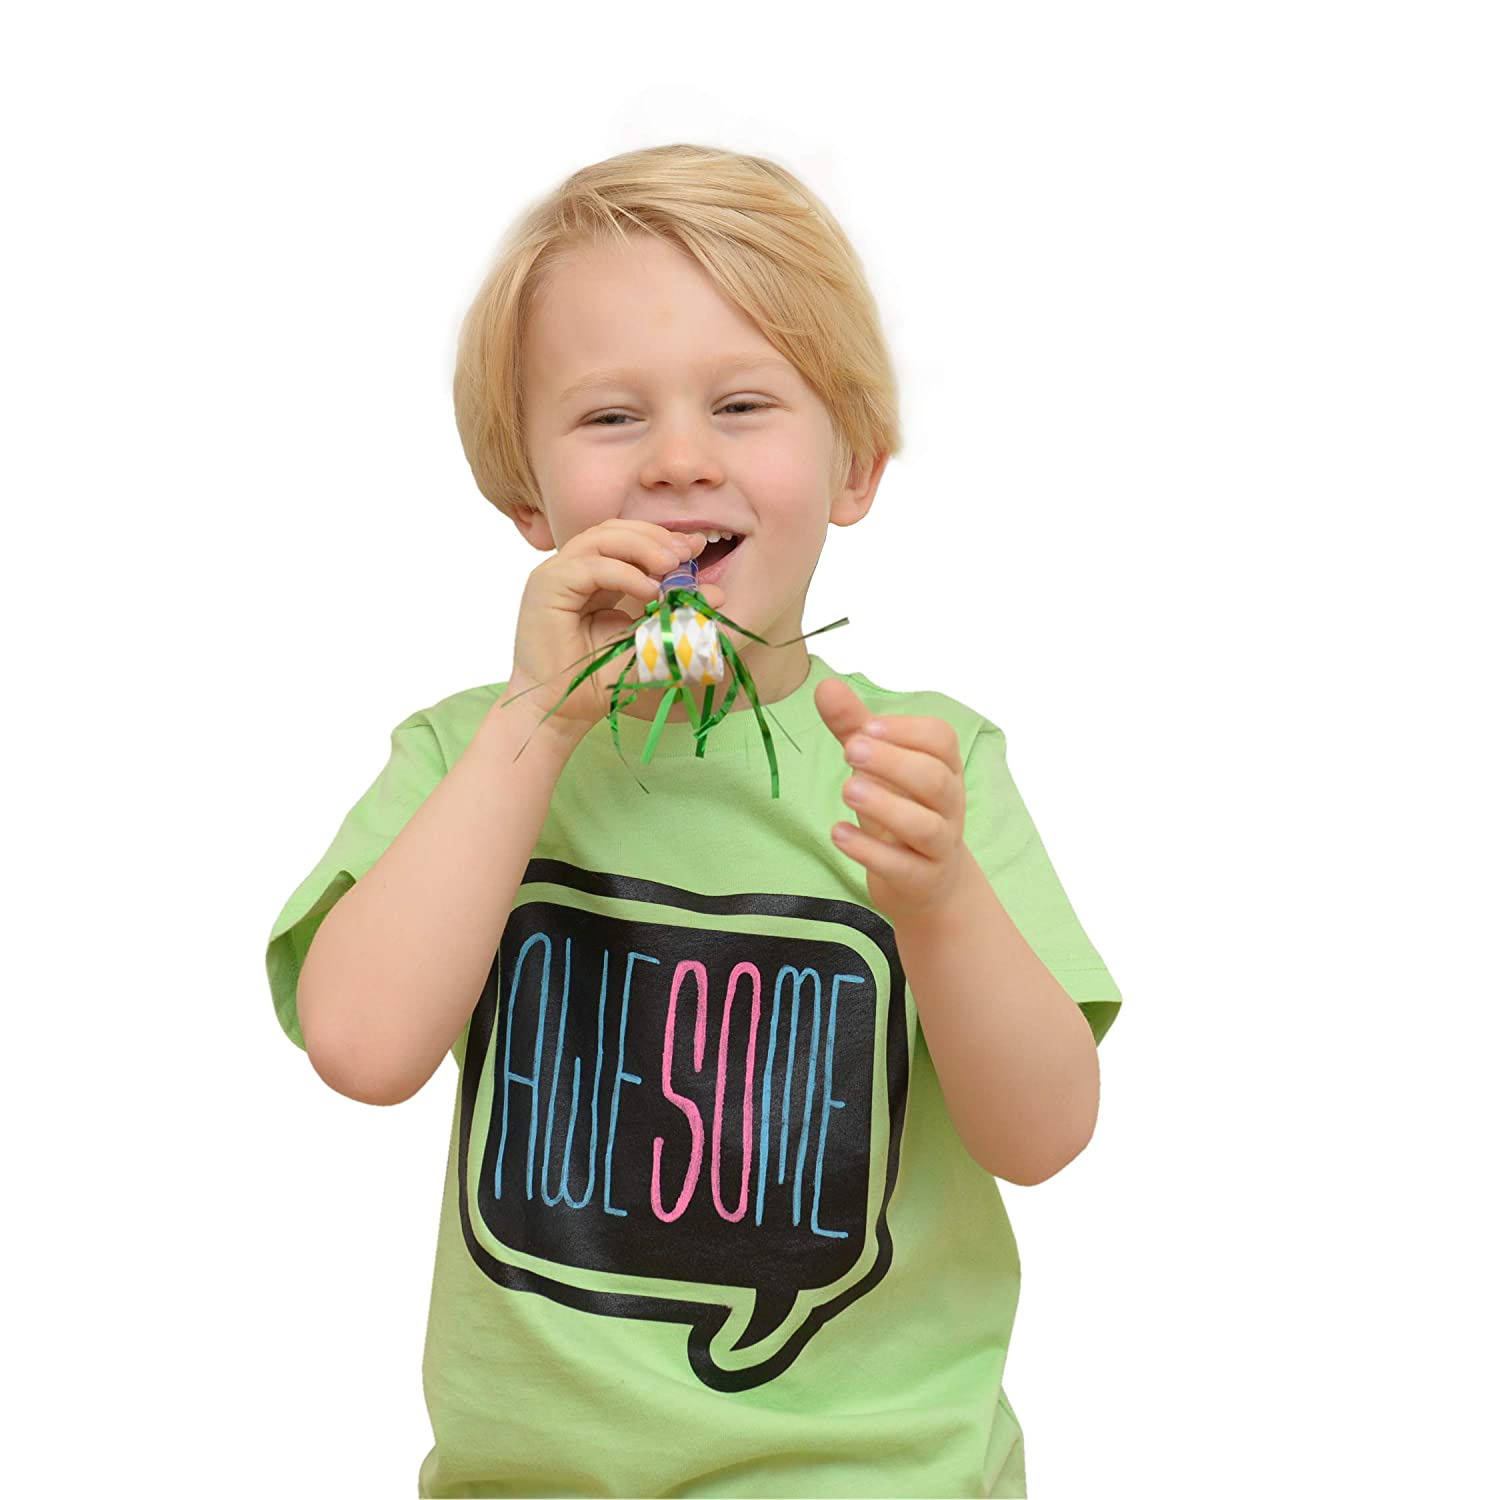 Chalk of the Town Chalkboard T-Shirt Kit for Kids Short Sleeve Lime Speech Bubble w//3 Markers and Stencil Youth Extra-Small